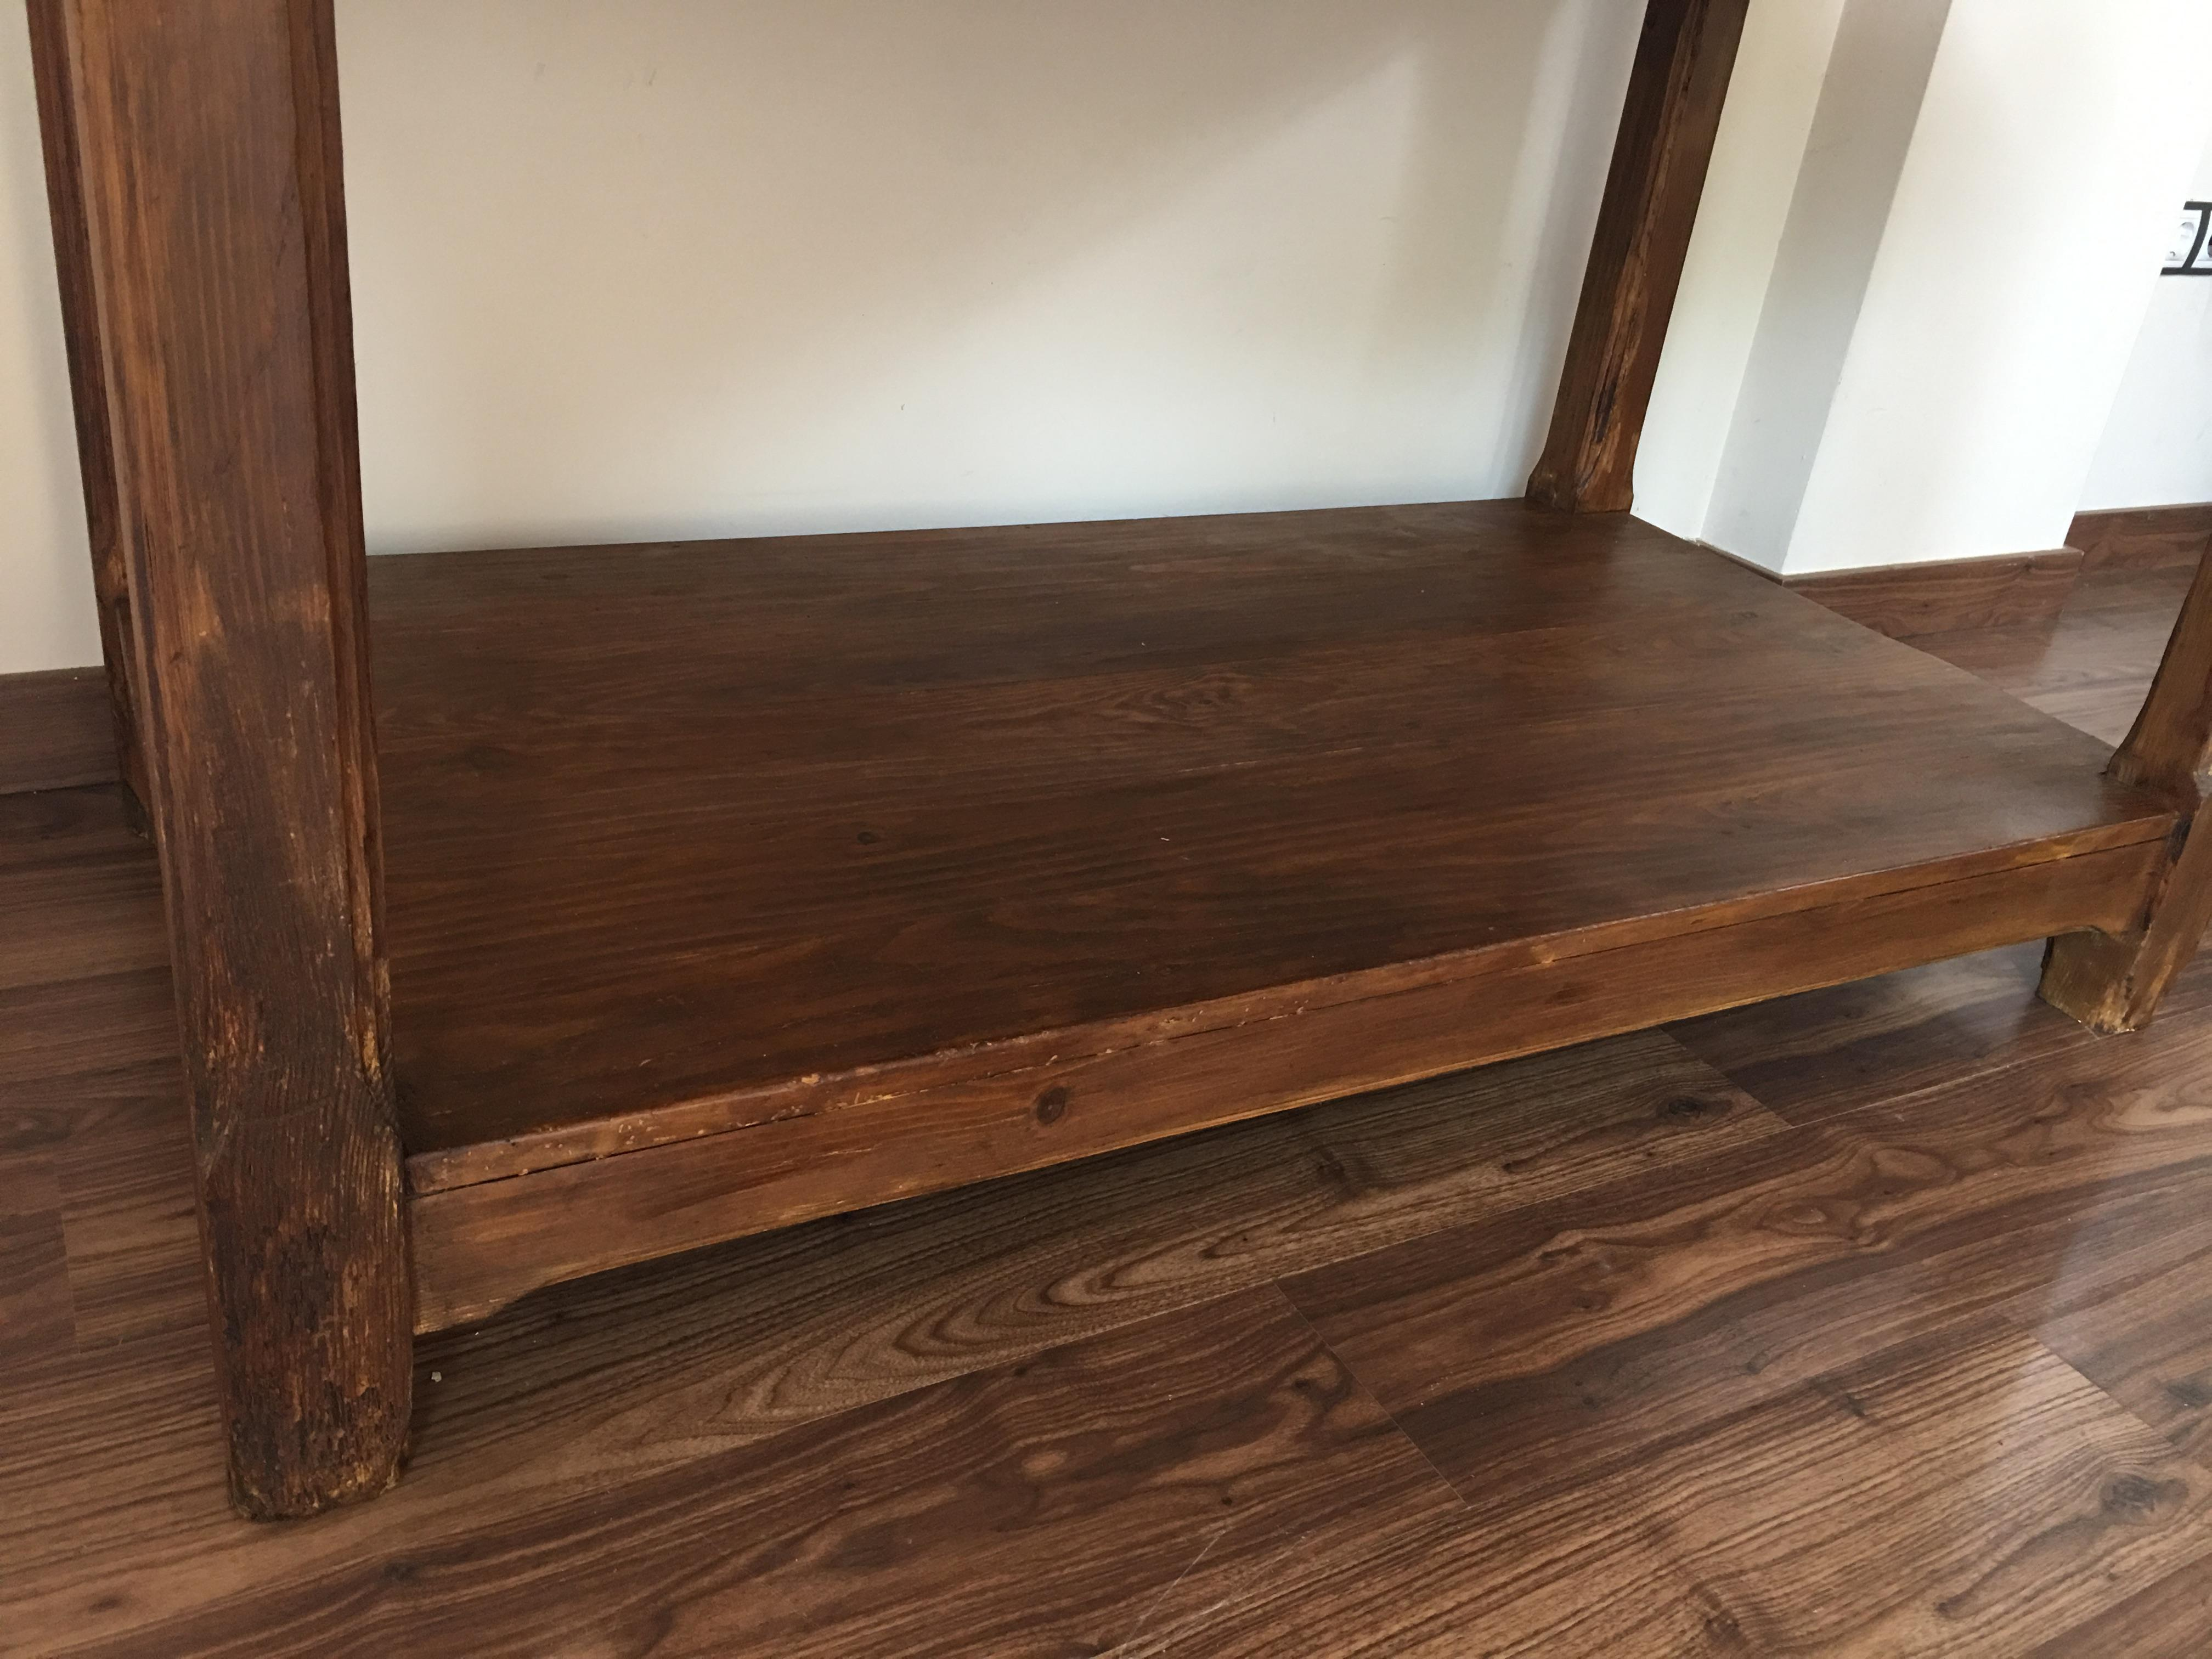 Marvelous 20th Century Pine Kitchen Table, Country Farm Table With Two Drawers    Image 8 Of